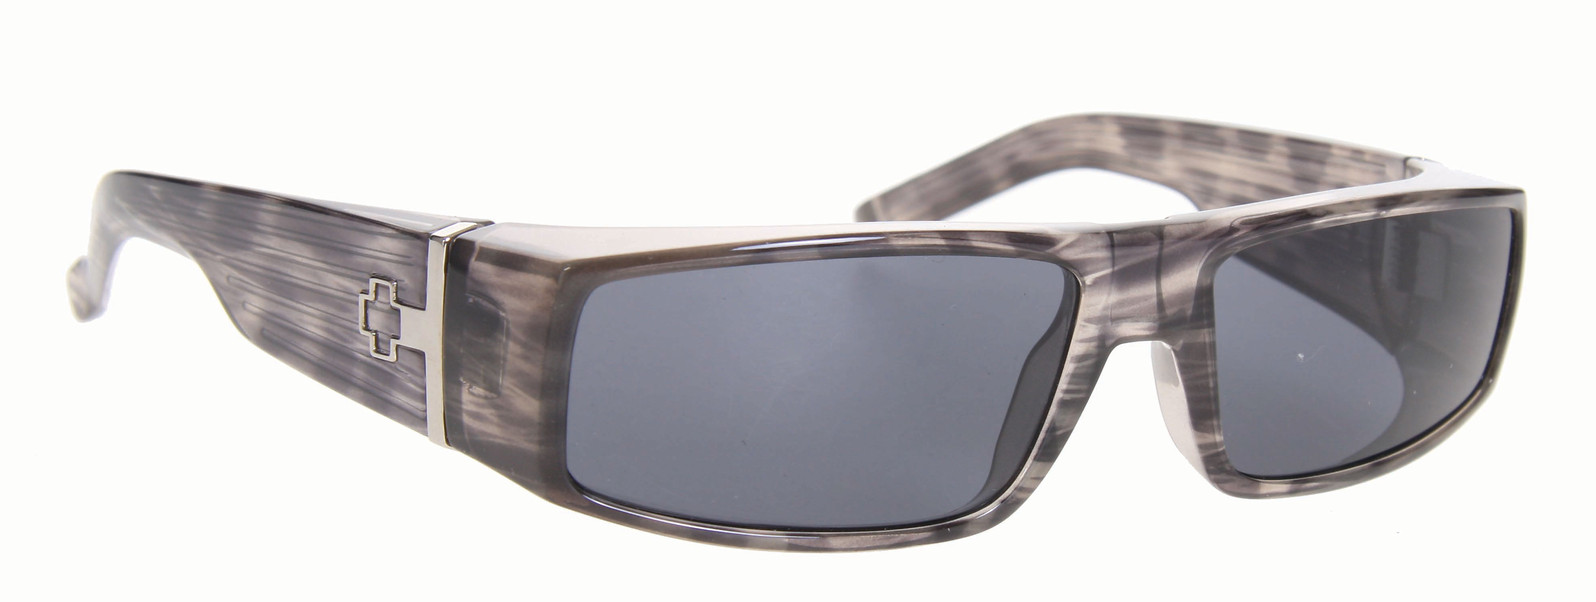 Spy Optic Spy Griffin Sunglasses Xray Tortoise/Grey Lens  spy-griffin-sngls-xraytortgry-09.jpg